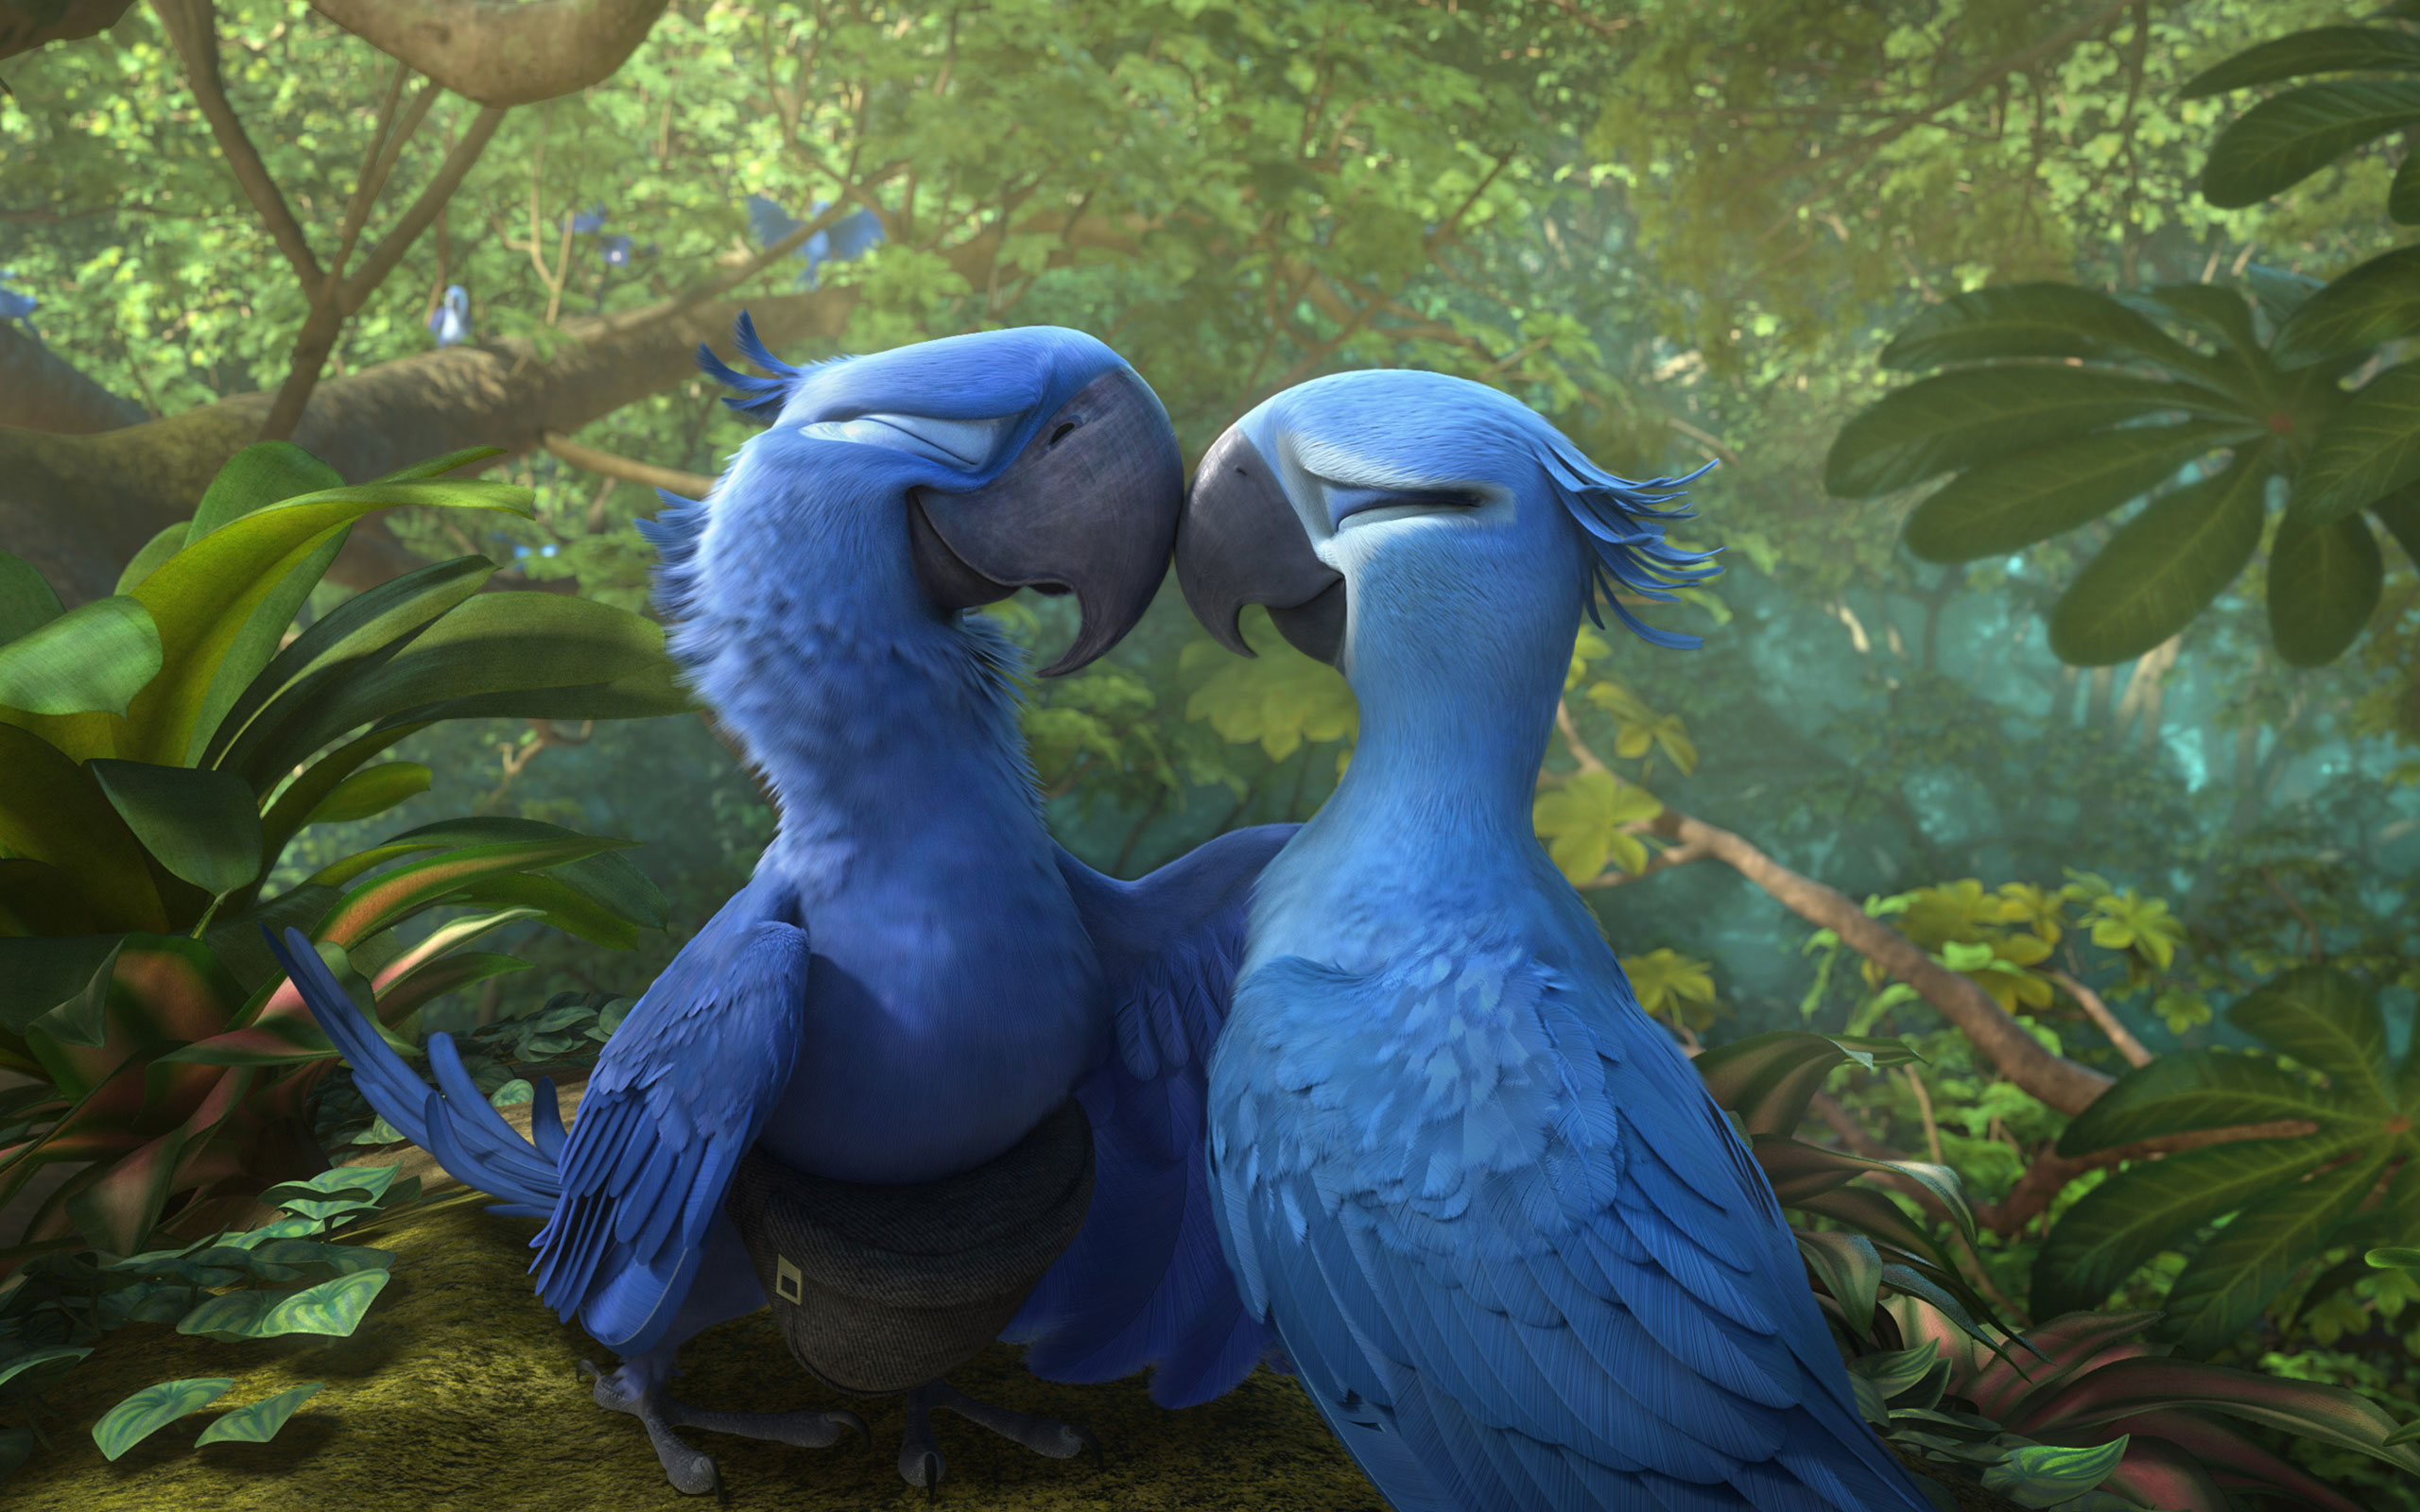 Free HD Rio 2 Movie Wallpapers & Desktop Backgrounds (2014